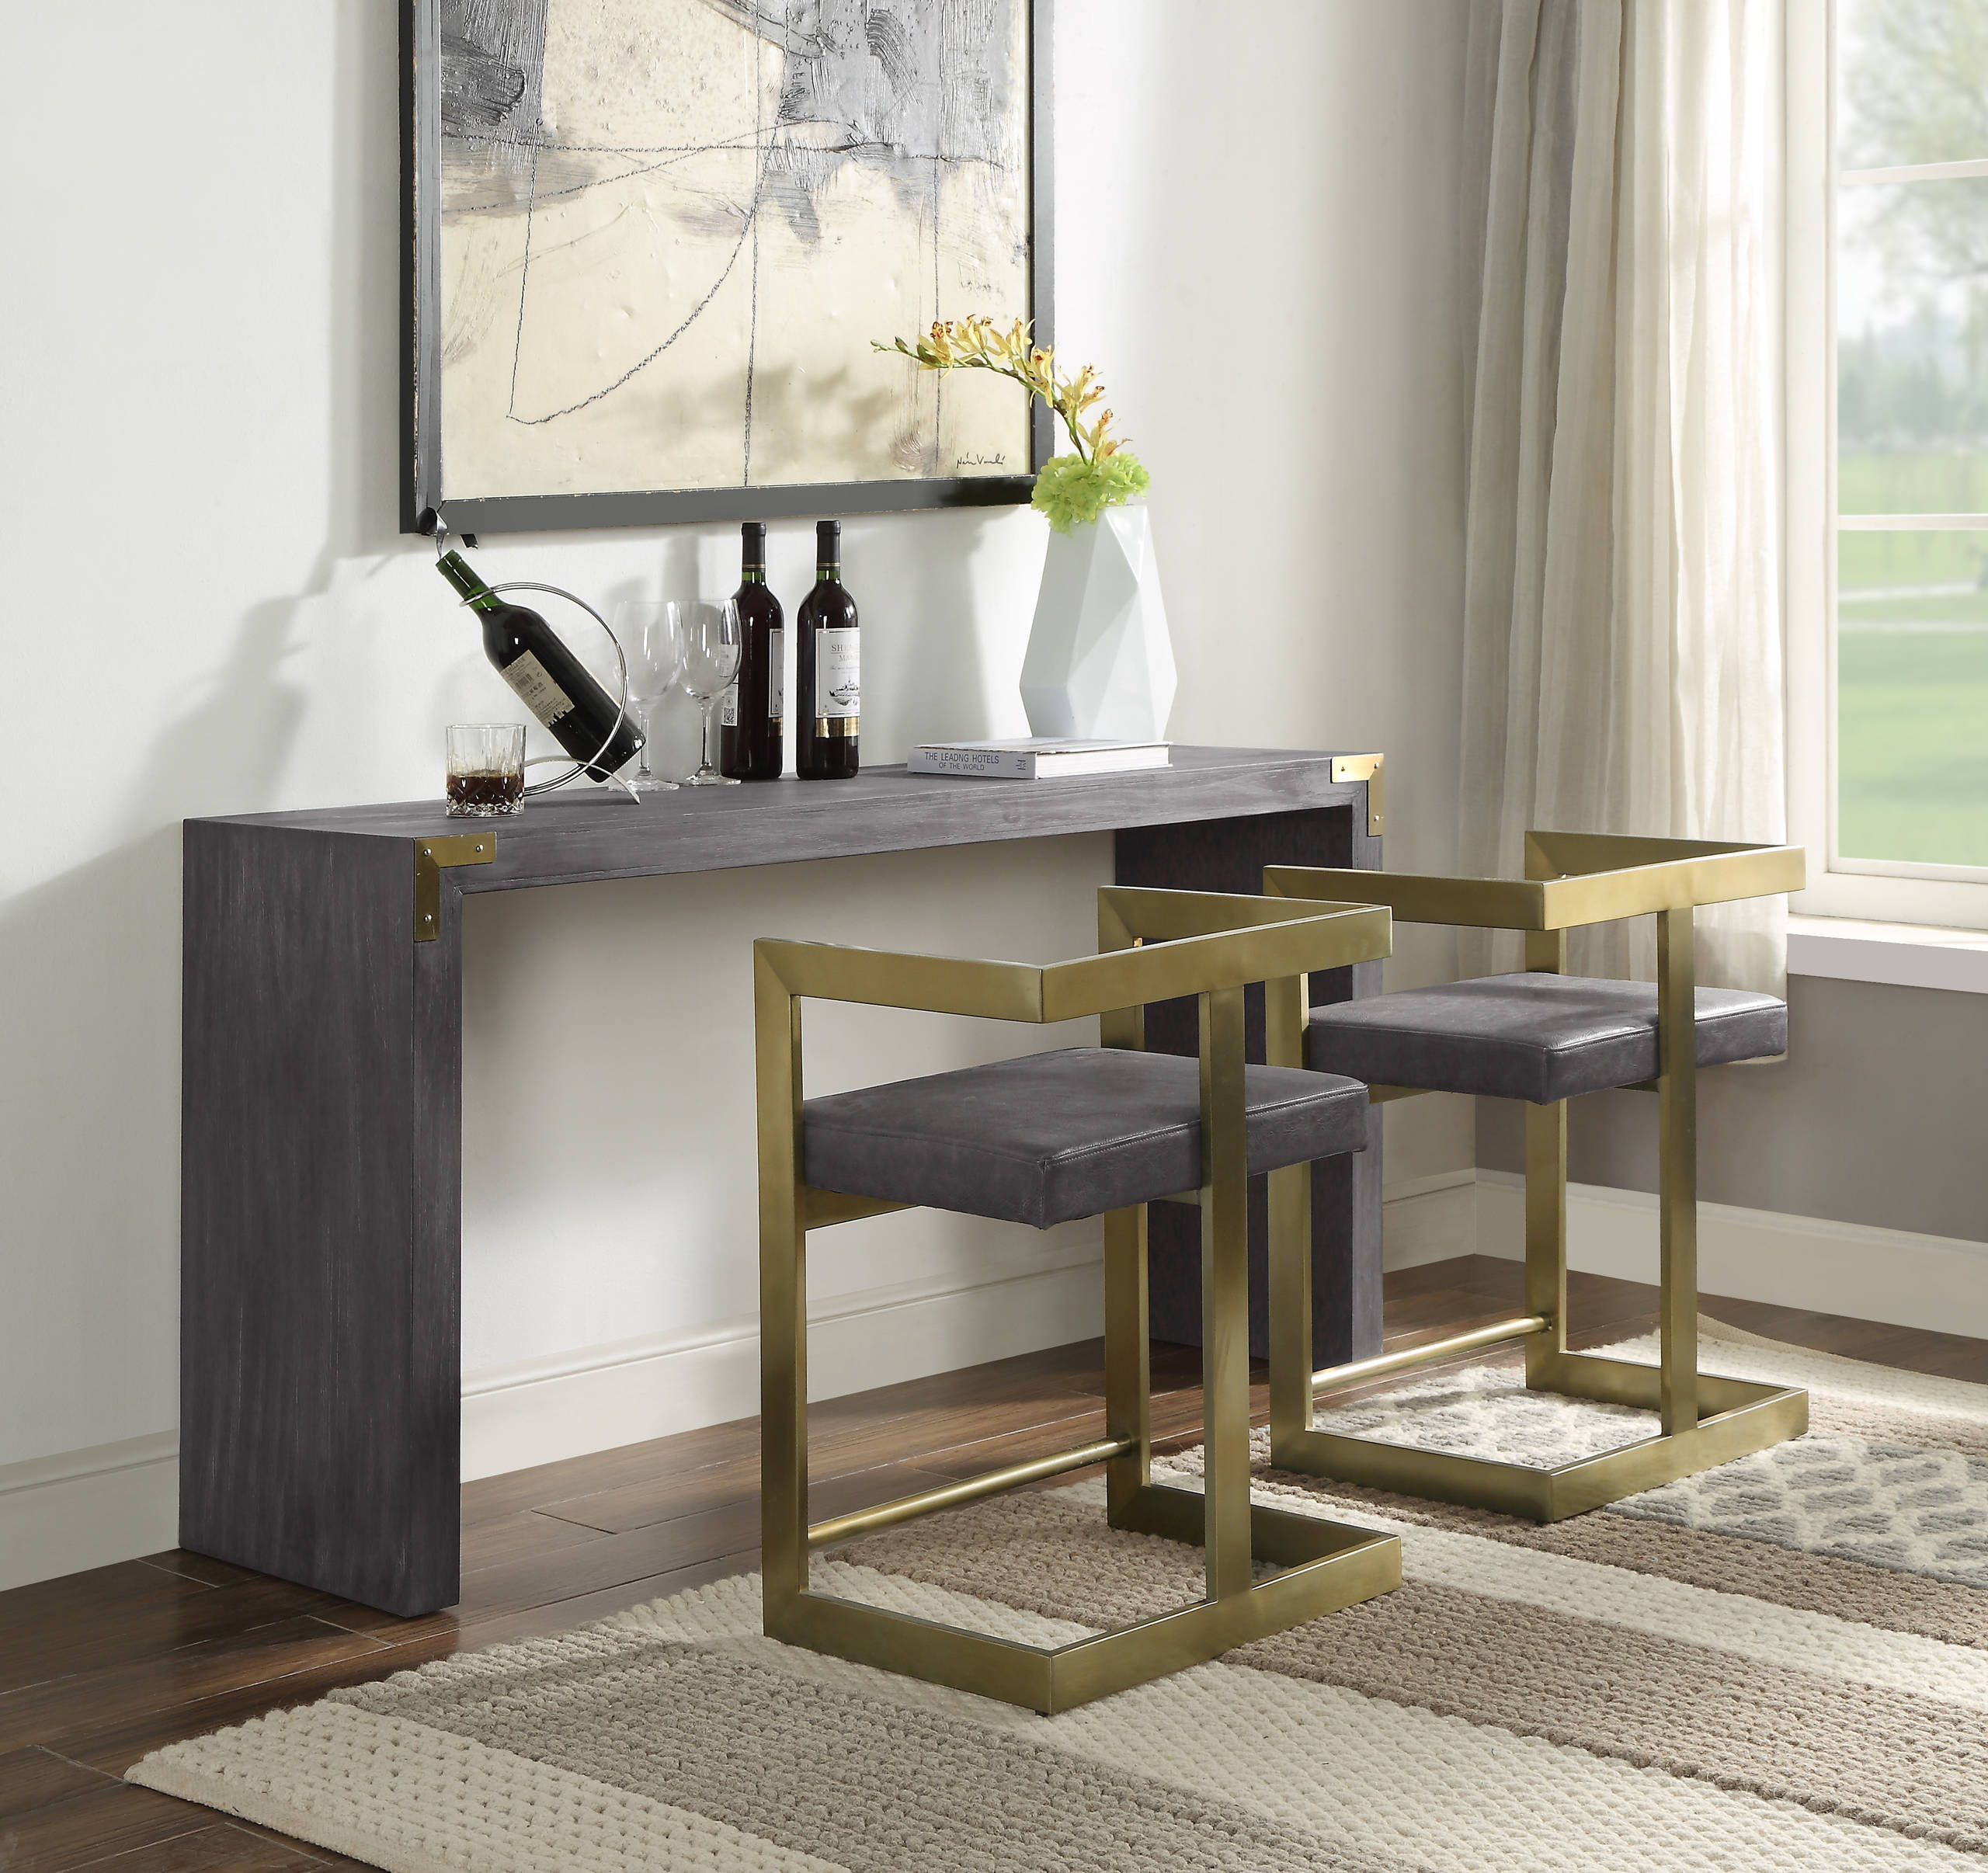 Console Table With Stool Ideas Photos, Sofa Table Desk With Stools